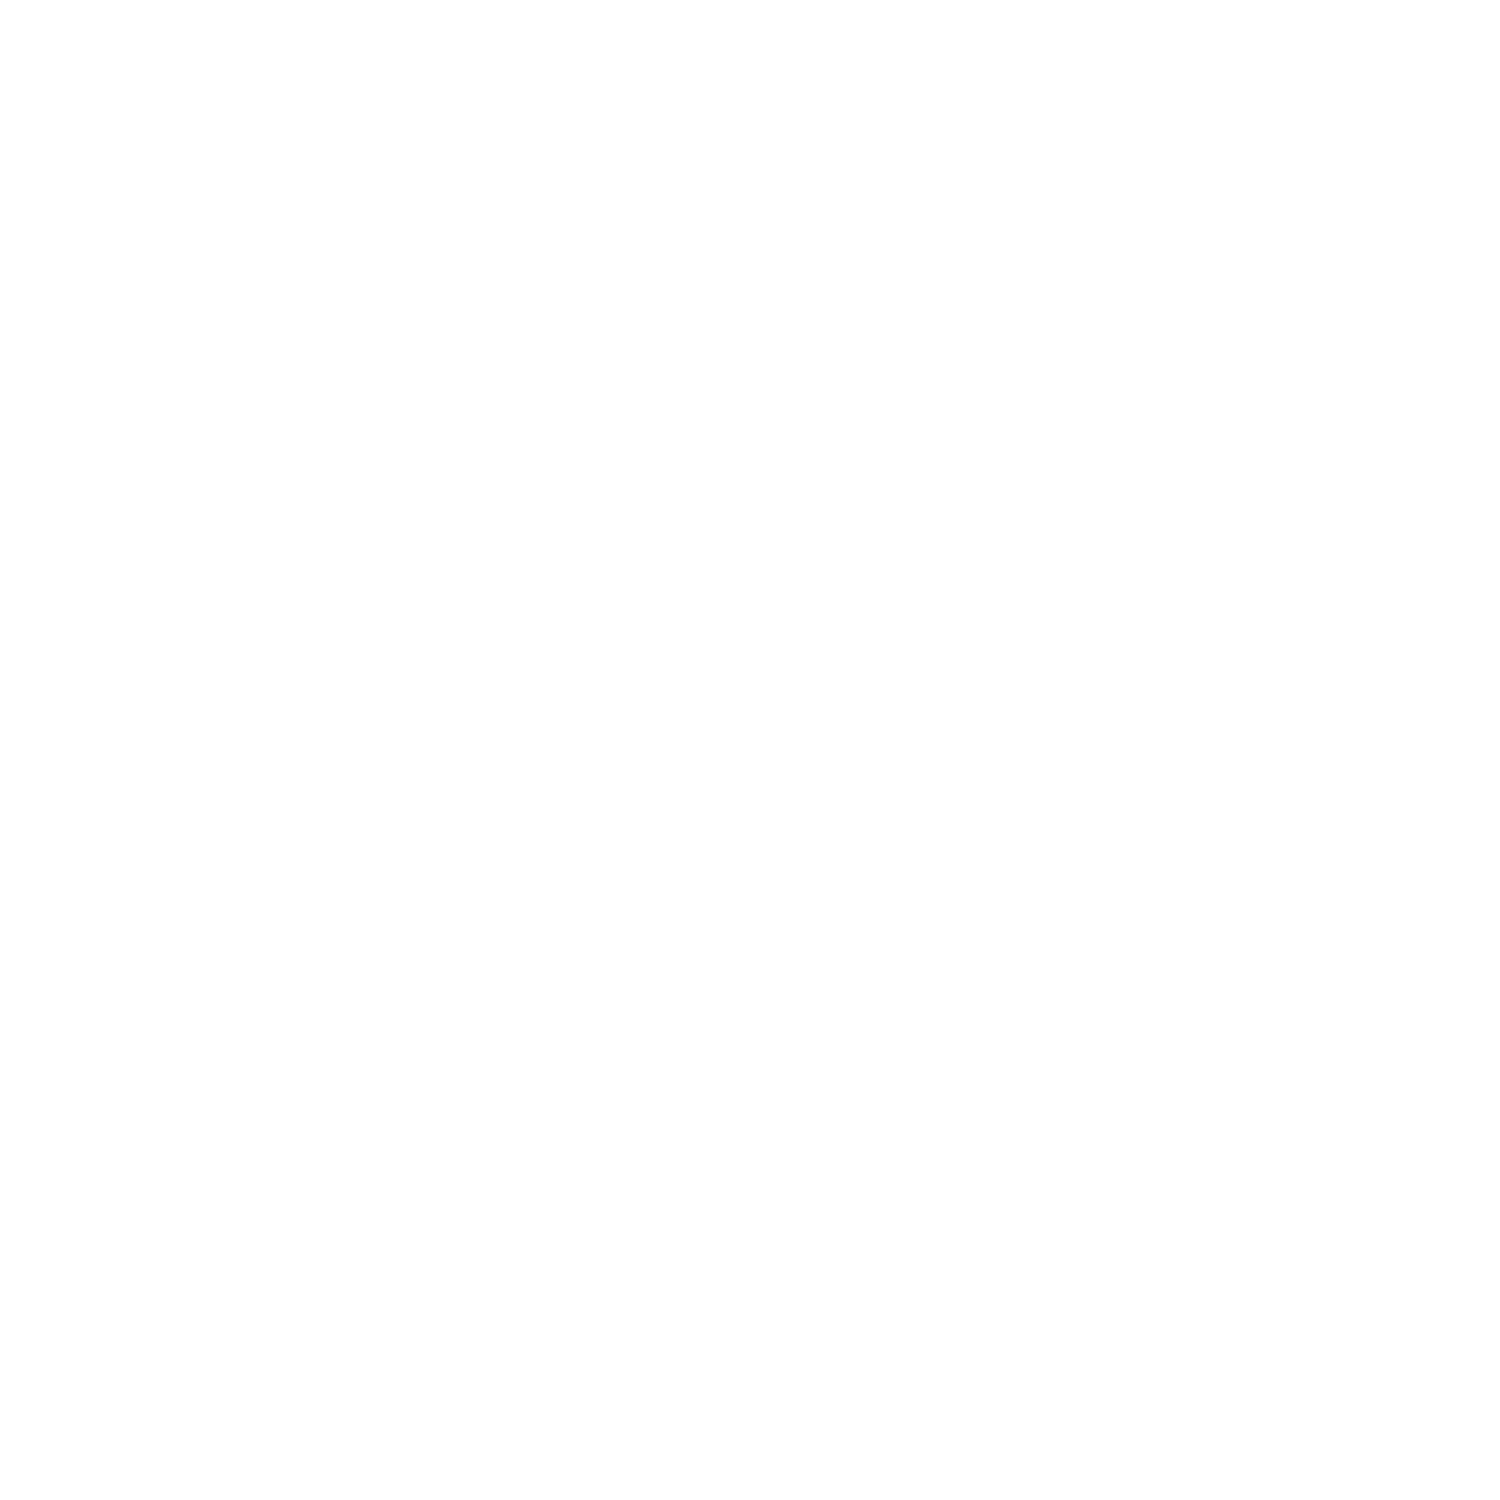 Seattle Tech 4 Housing